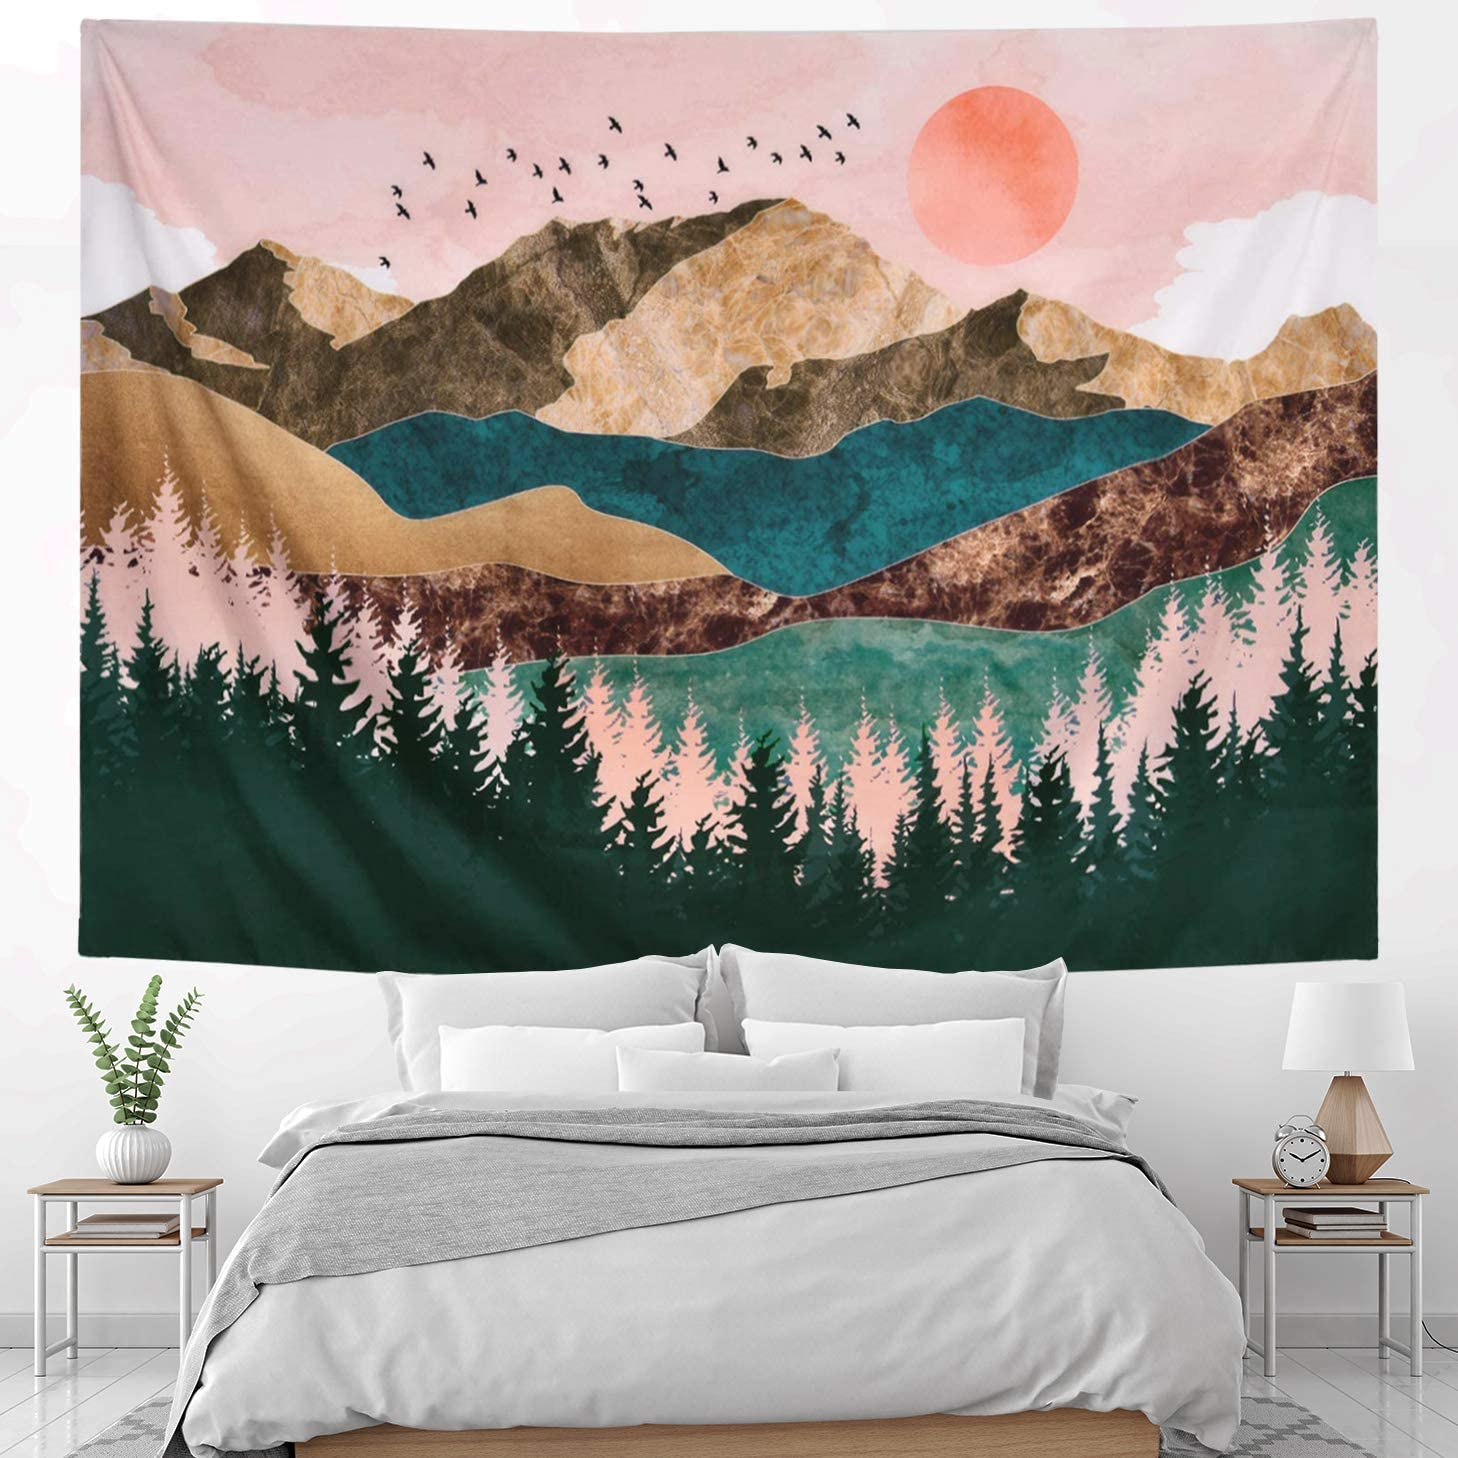 HOMKUMY Mountain Wall Tapestry, Sunset Forest Trees Nature Landscape Art Wall Hanging for Home Decor Bedroom Living Room Hippie Tapestry Psychedelic Indian Nature Tapestry, Medium 59x51 Inches